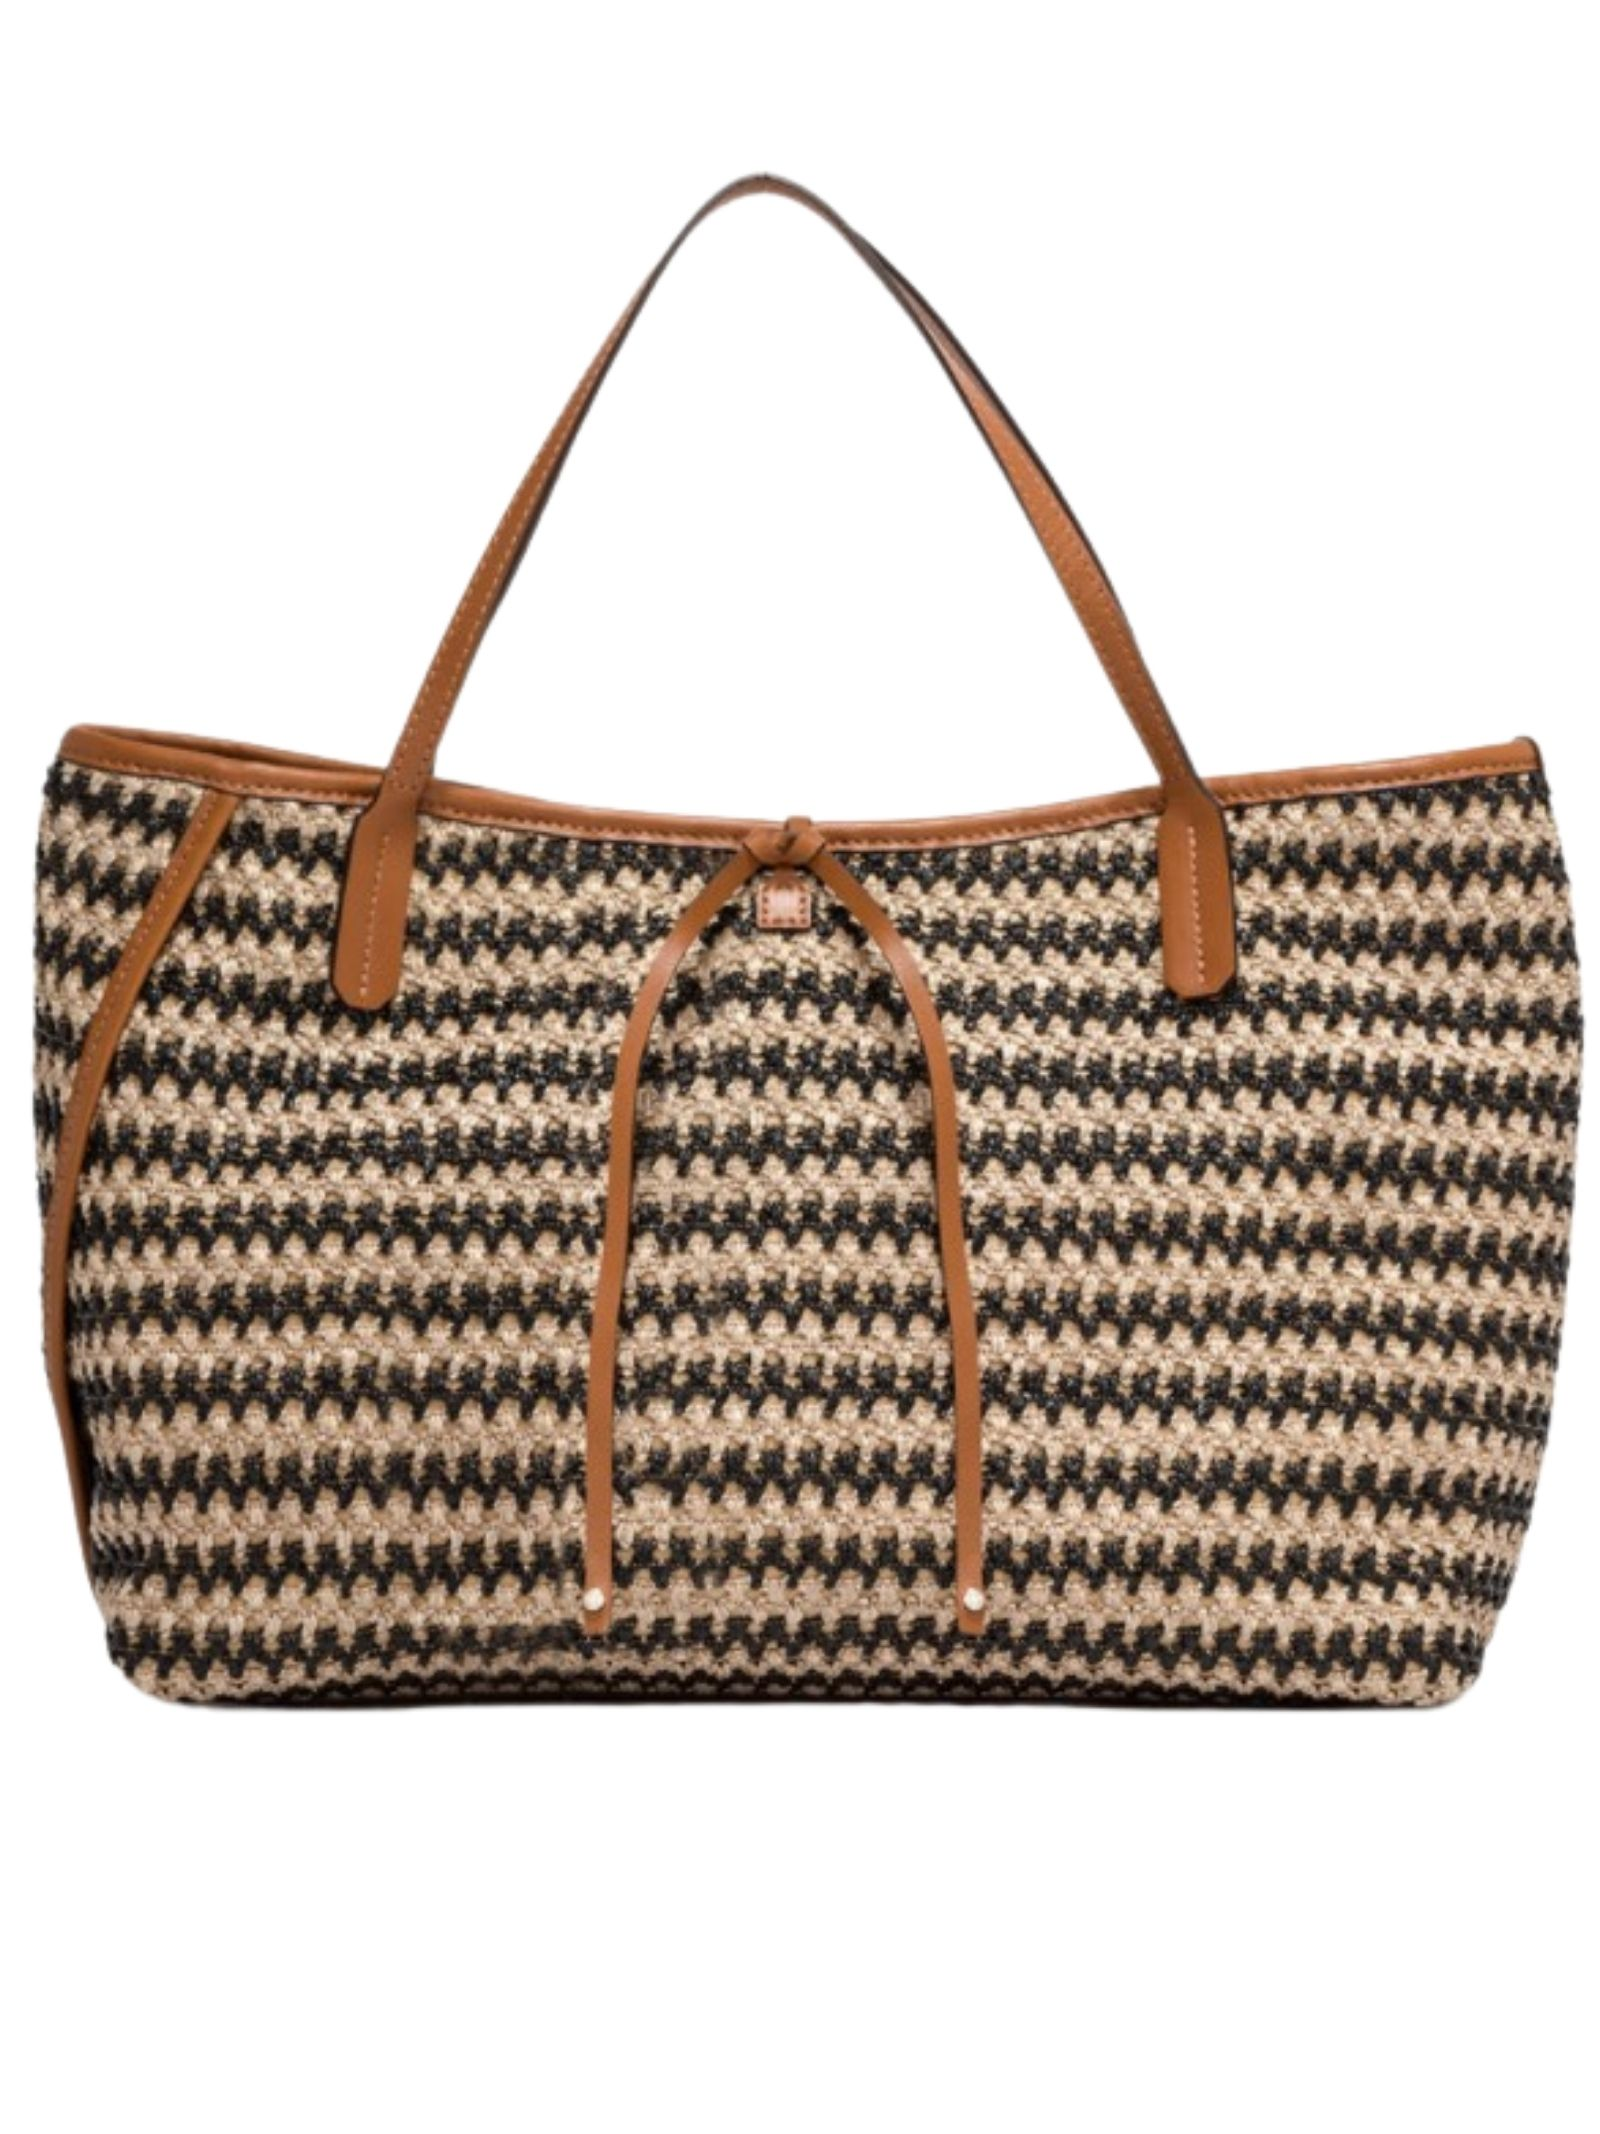 Ray Woman Shoulder Bag In Bicolor Braided Raffia With Leather Leather Inserts Gianni Chiarini | Bags and backpacks | BS835111768